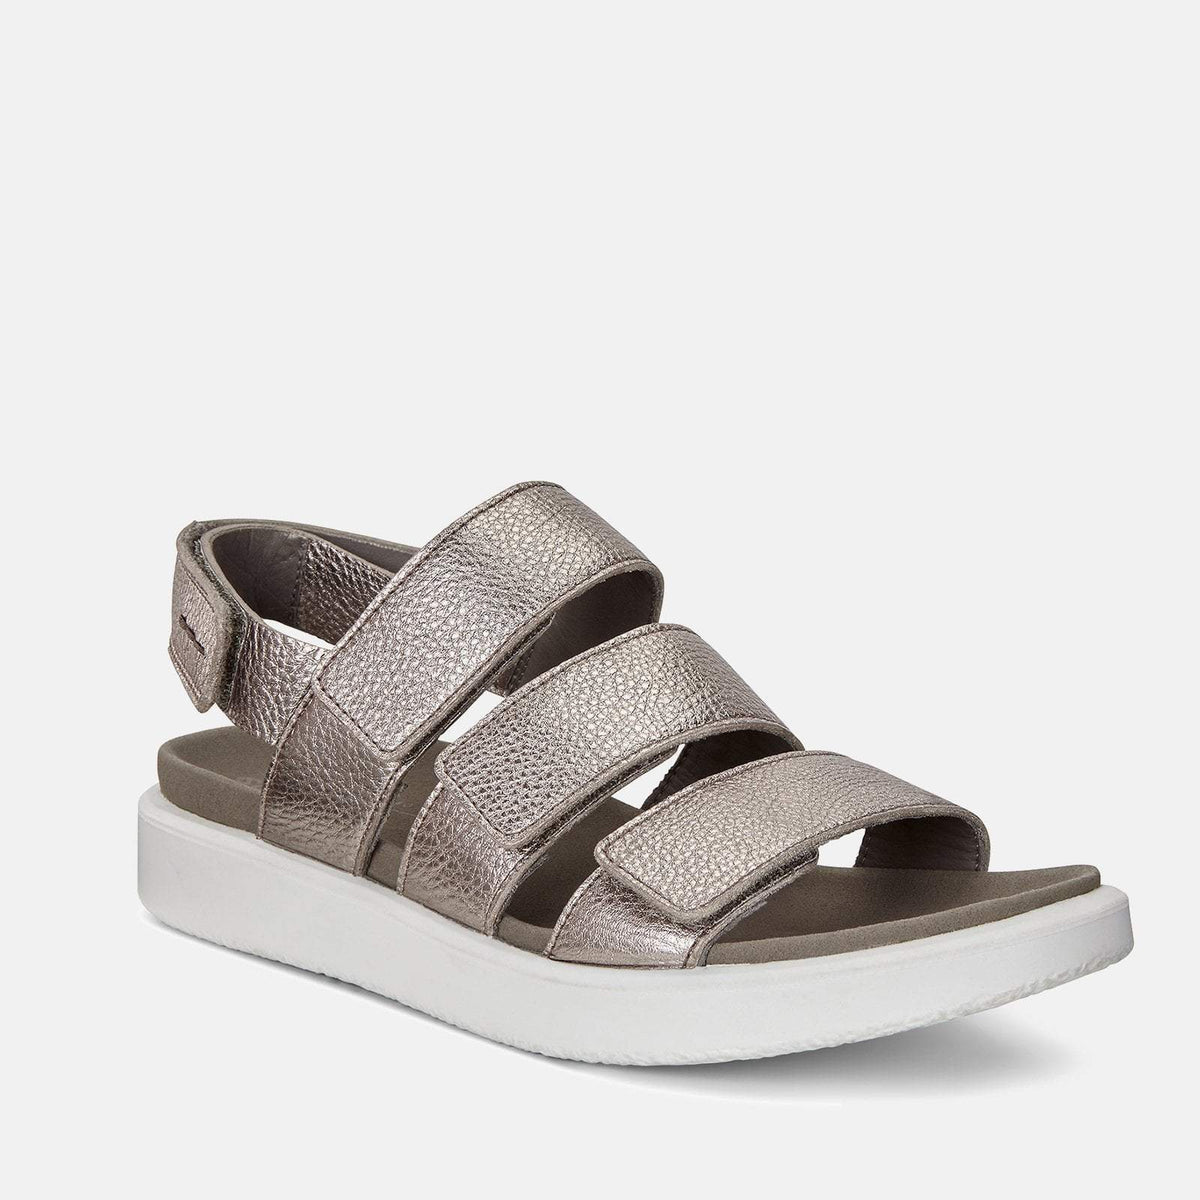 ecco ladies sandals products for sale